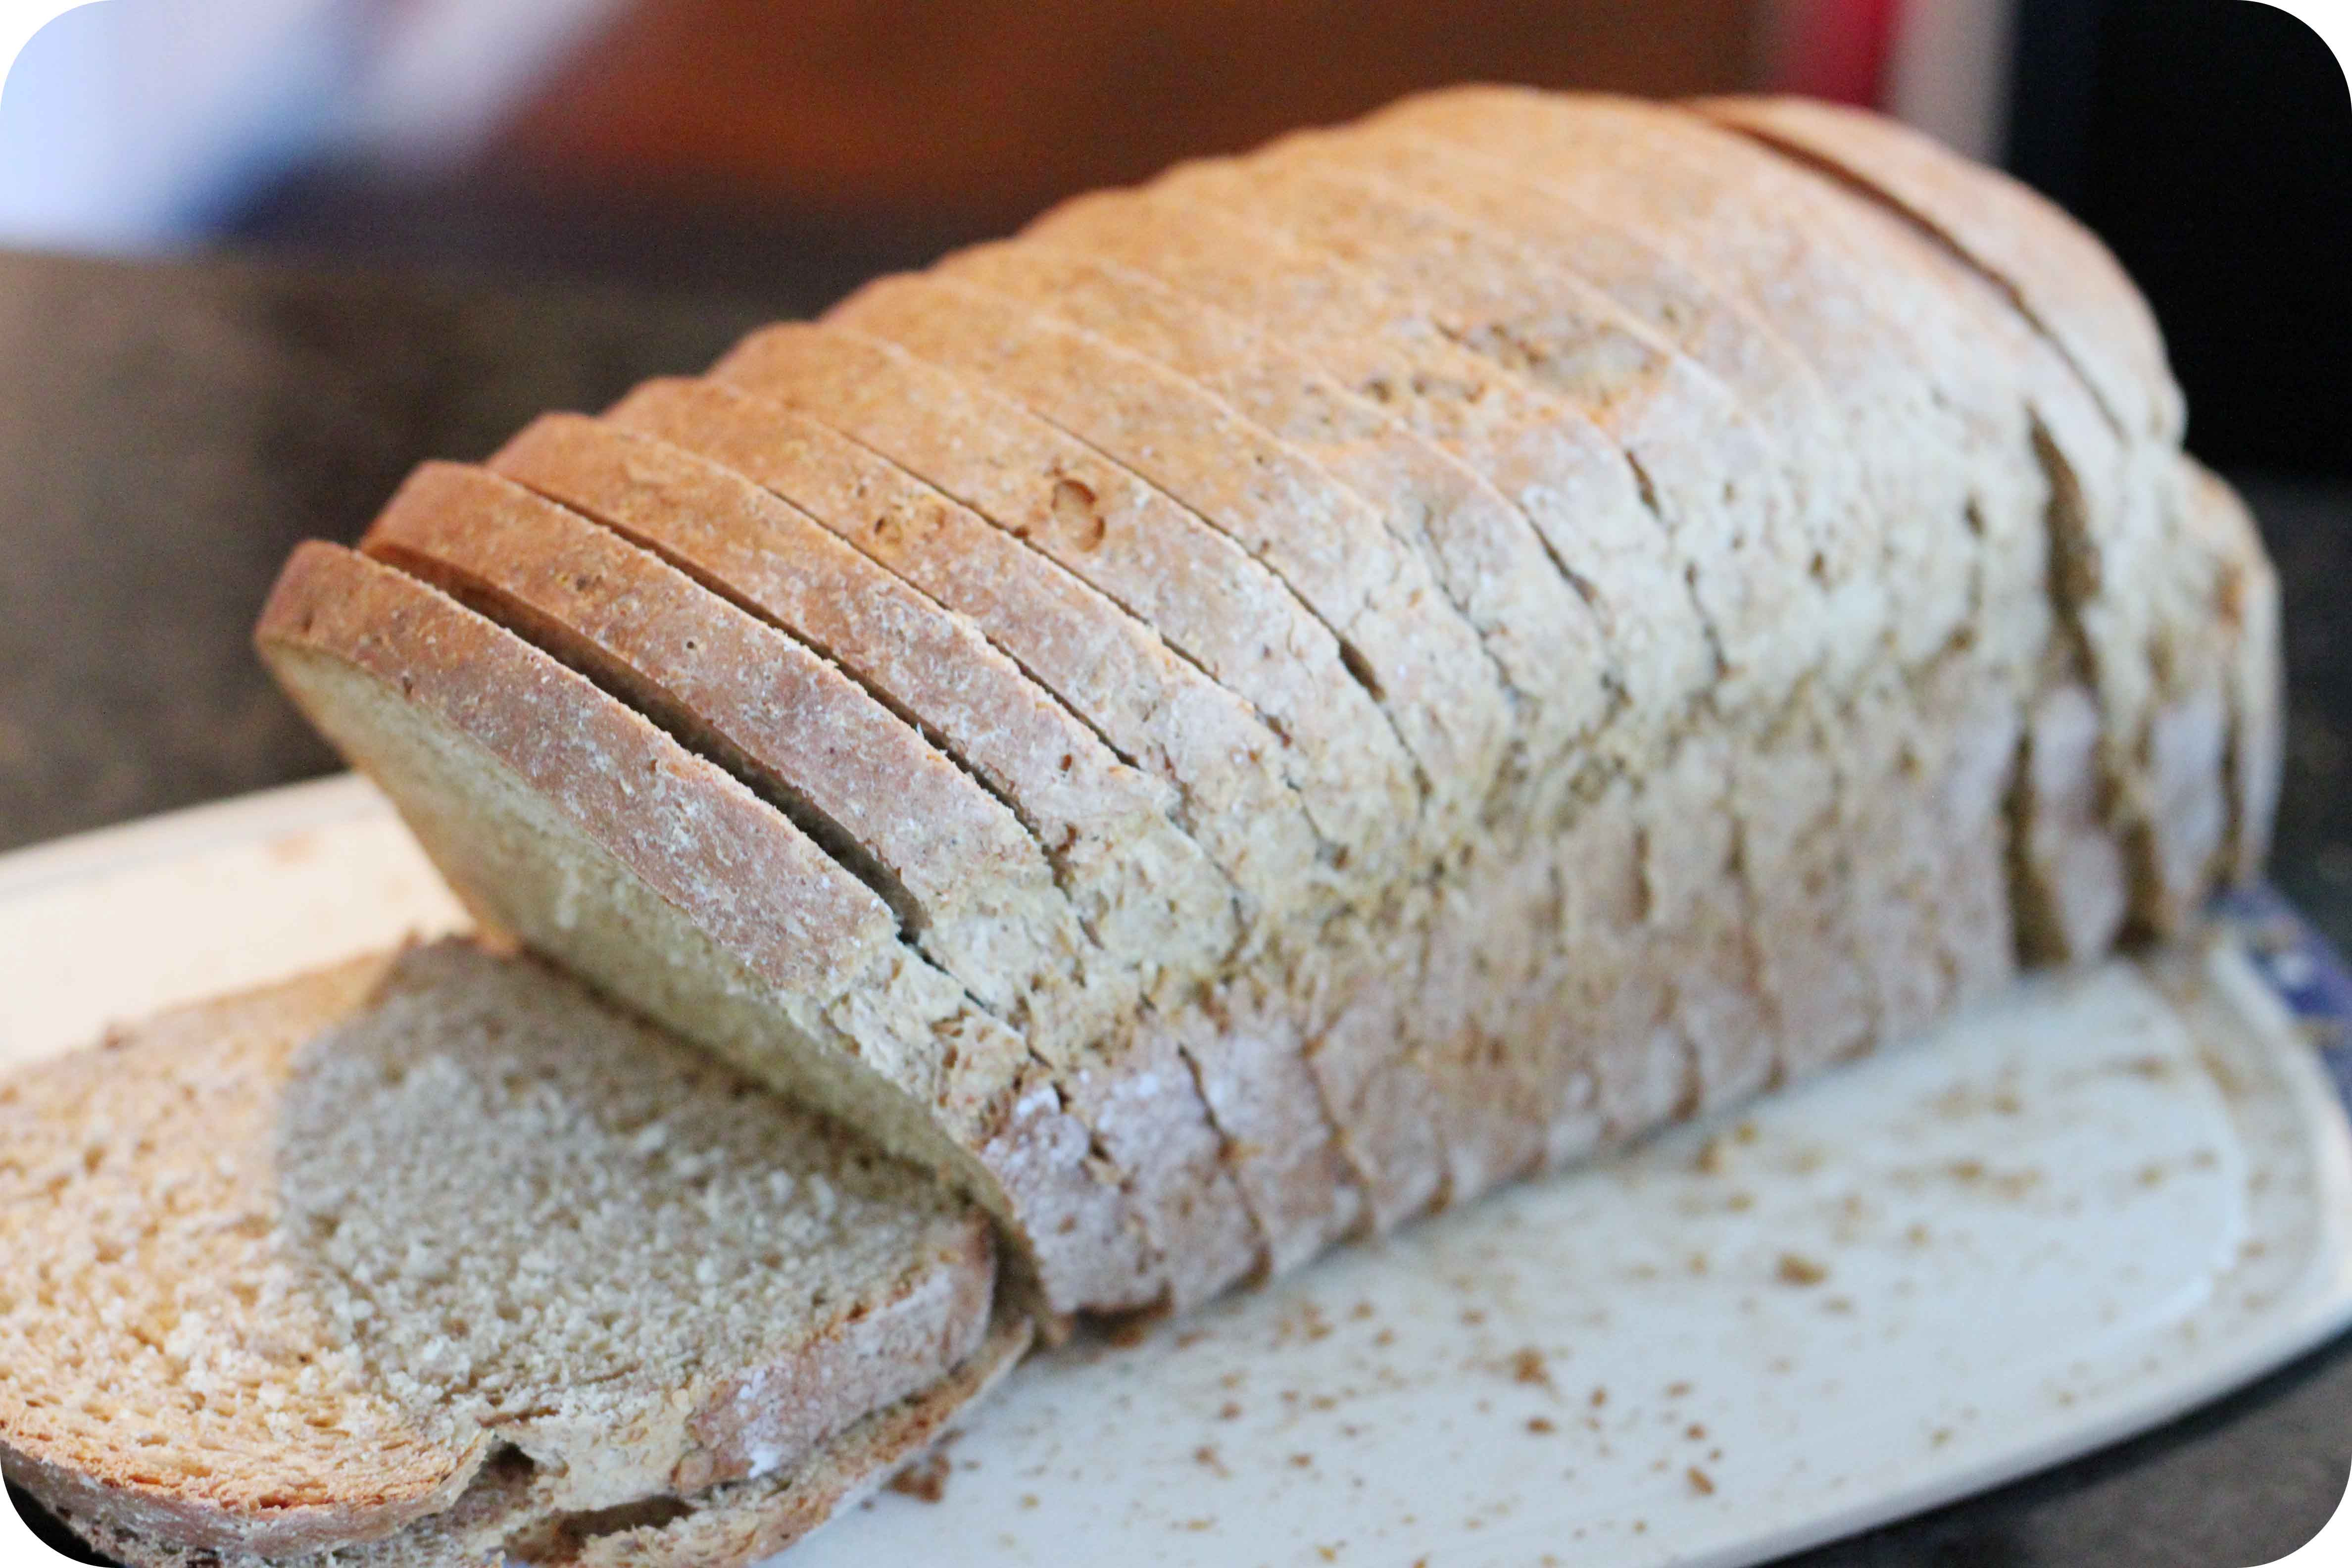 100% Whole Grain Bread  Eat better and save money by making your own Whole